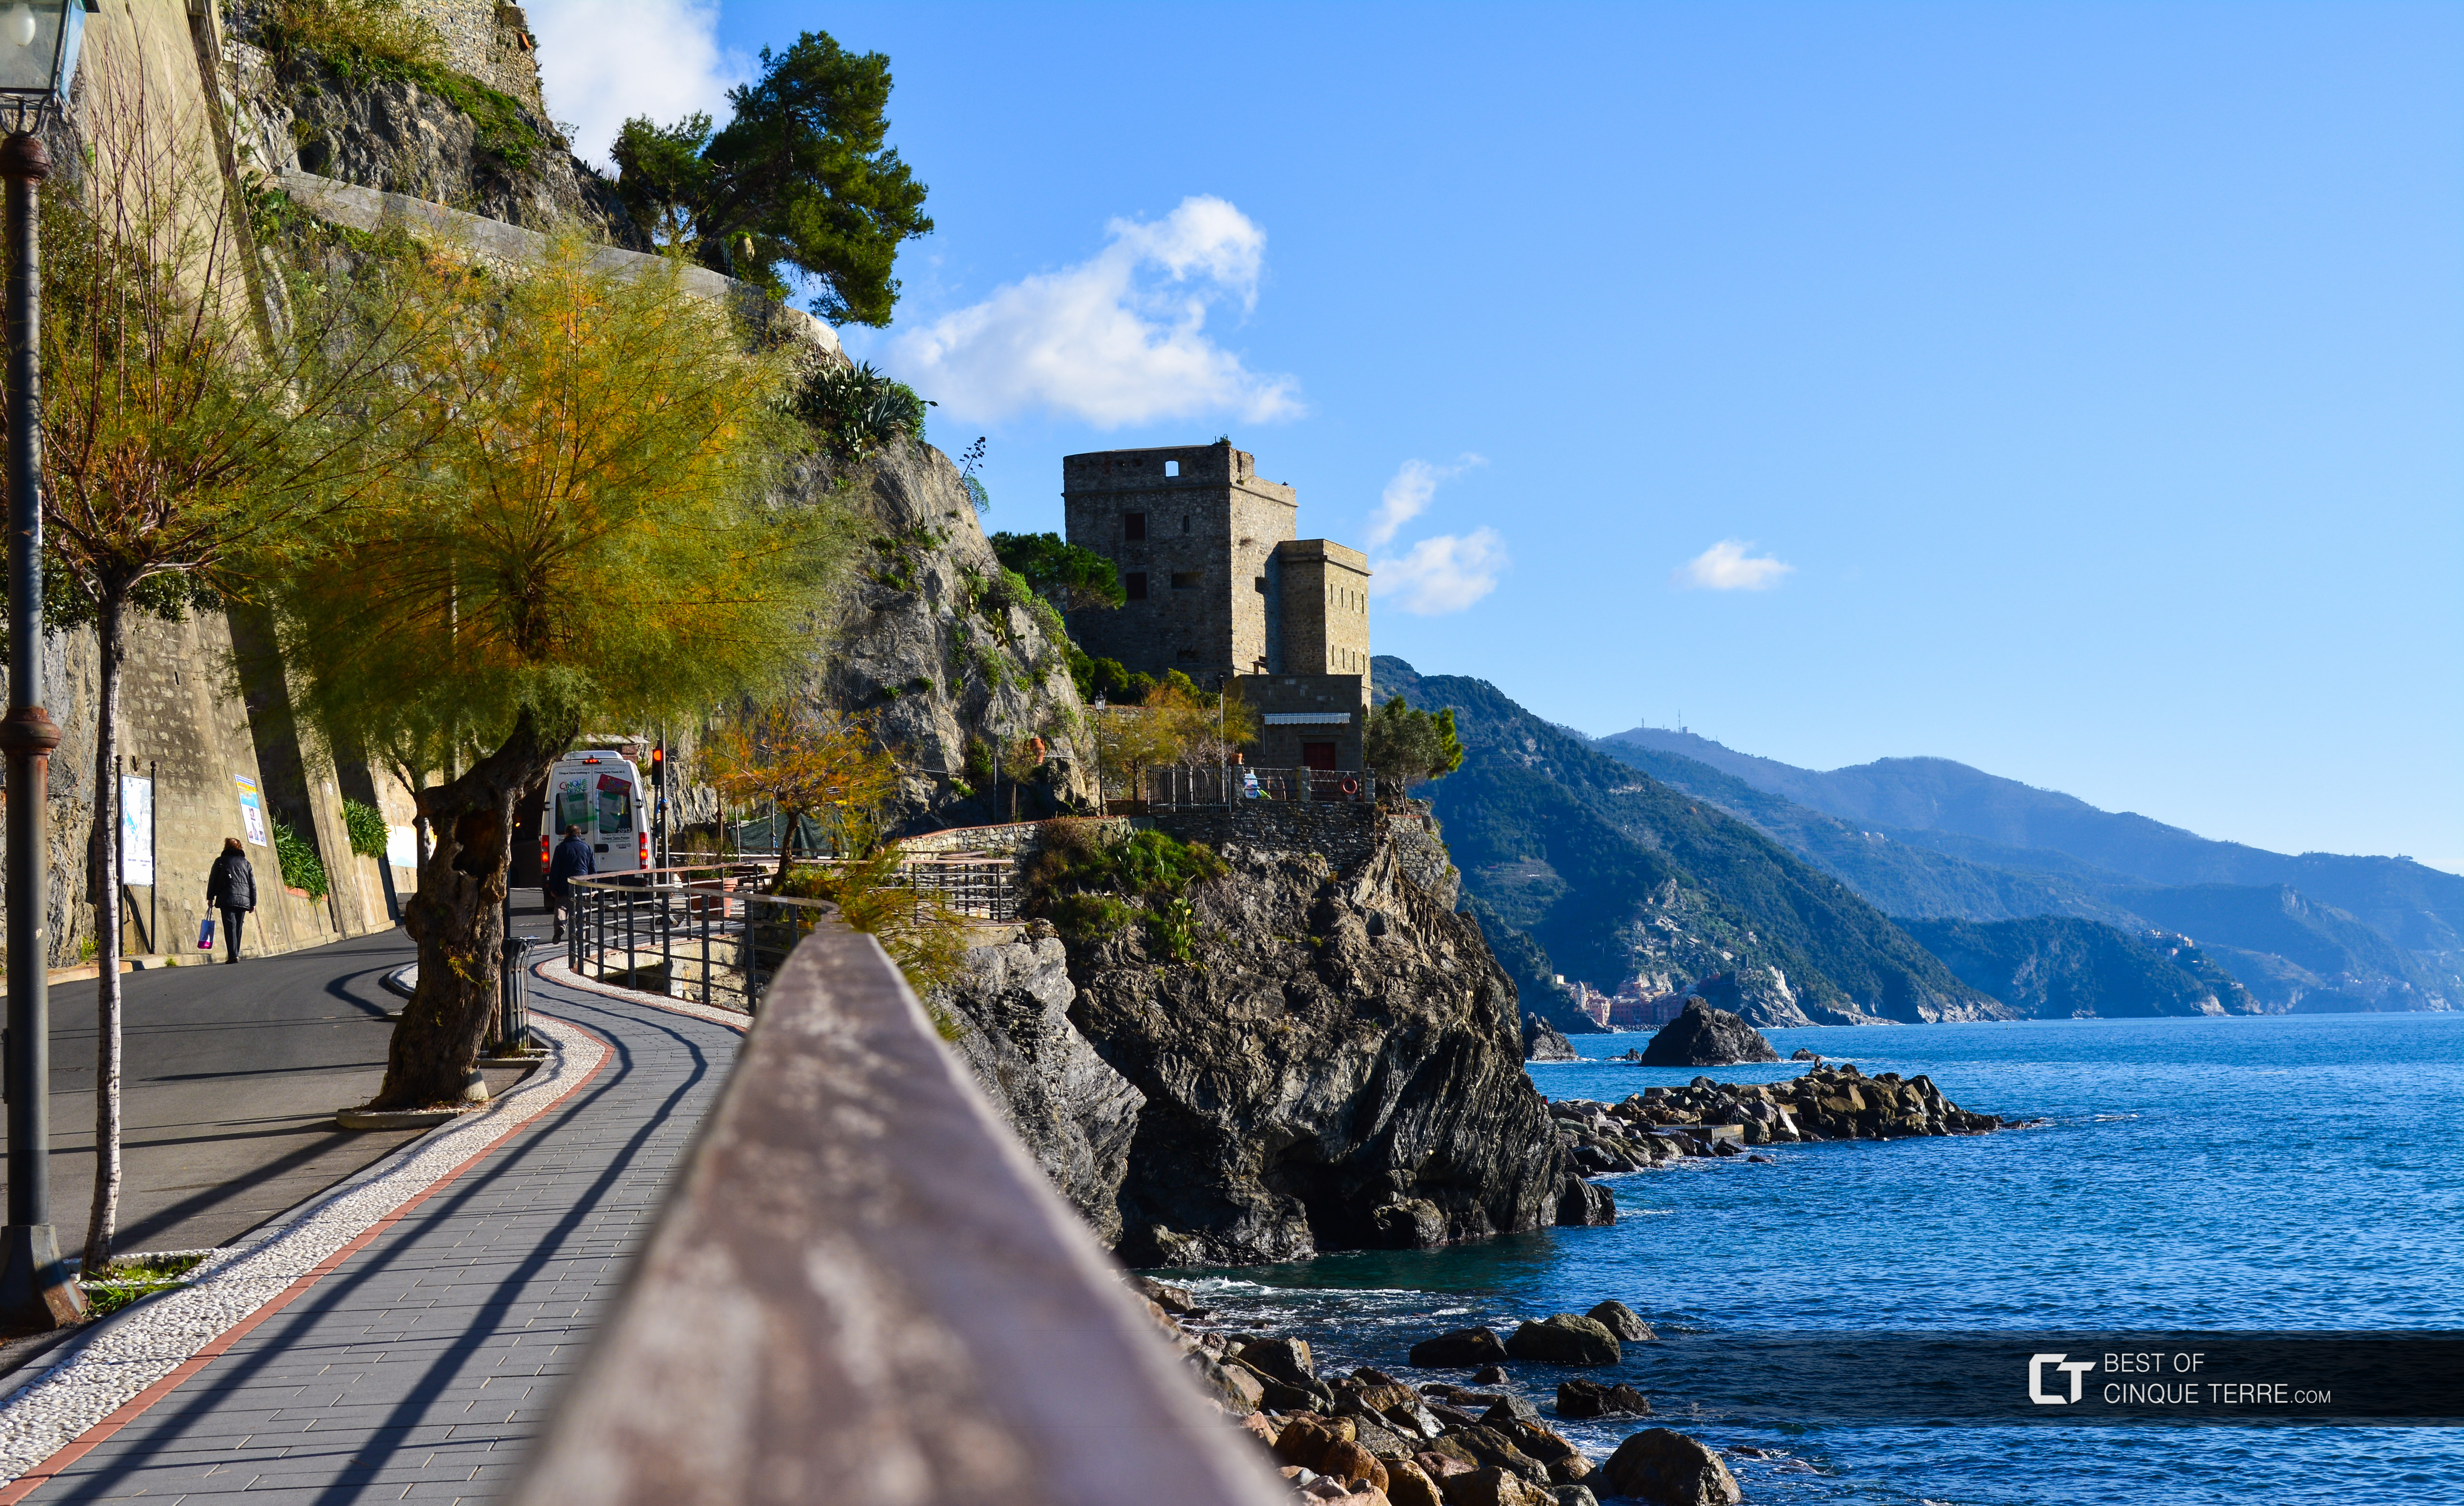 Seaside promenade and the Aurora tower, Monterosso al Mare, Cinque Terre, Italy